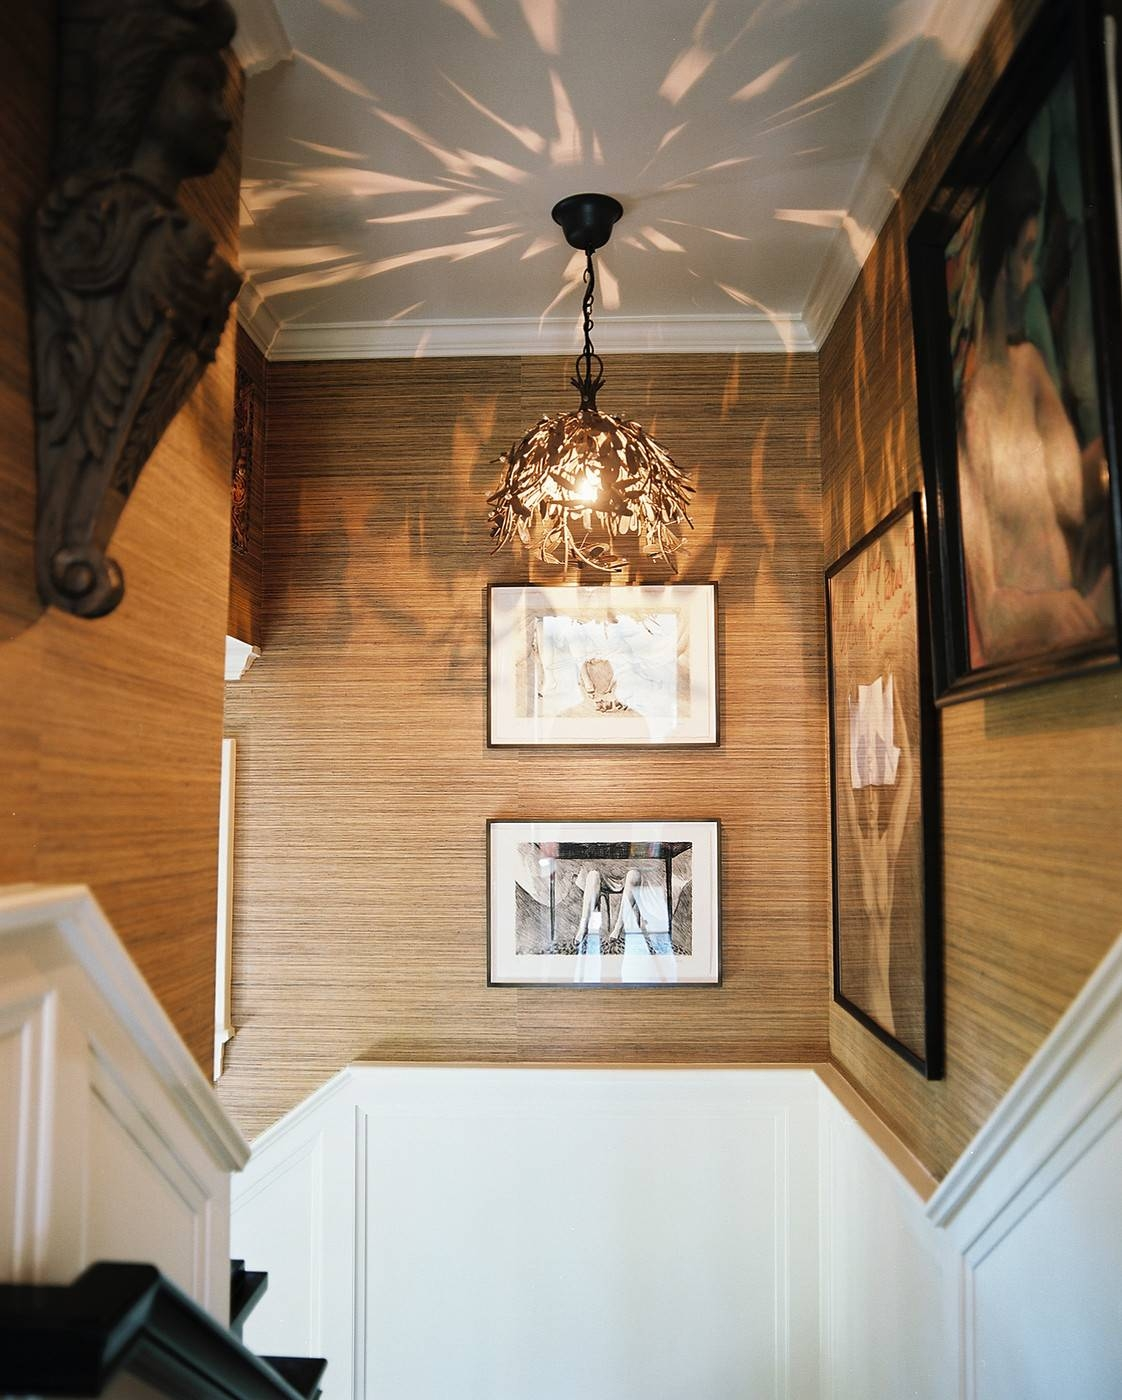 Stairwell Pendant Light Photos, Design, Ideas, Remodel, And Decor inside Pendant Lights for Stairwell (Image 11 of 15)